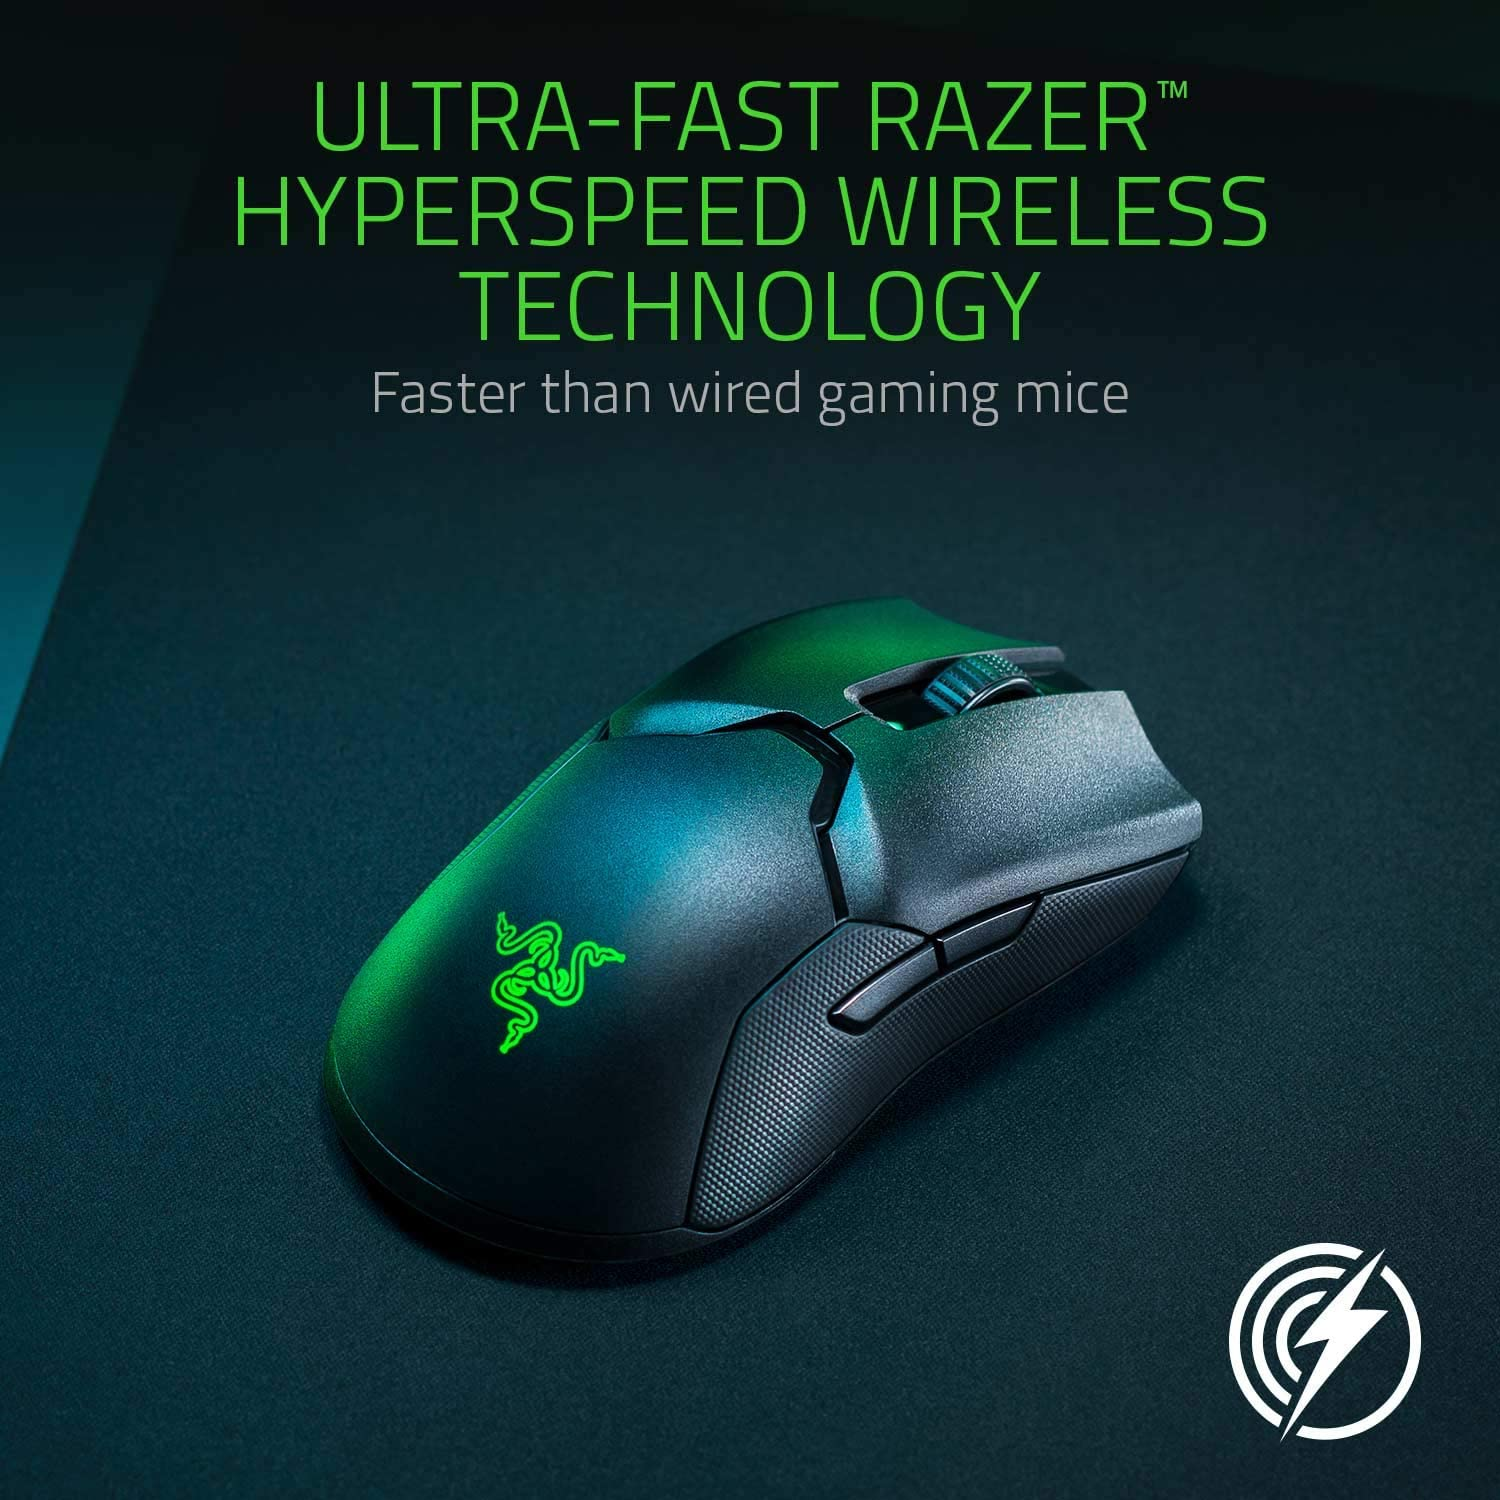 Razer Viper Ultimate Ambidextrous Gaming Mouse with Razer HyperSpeed Wireless - Black 5